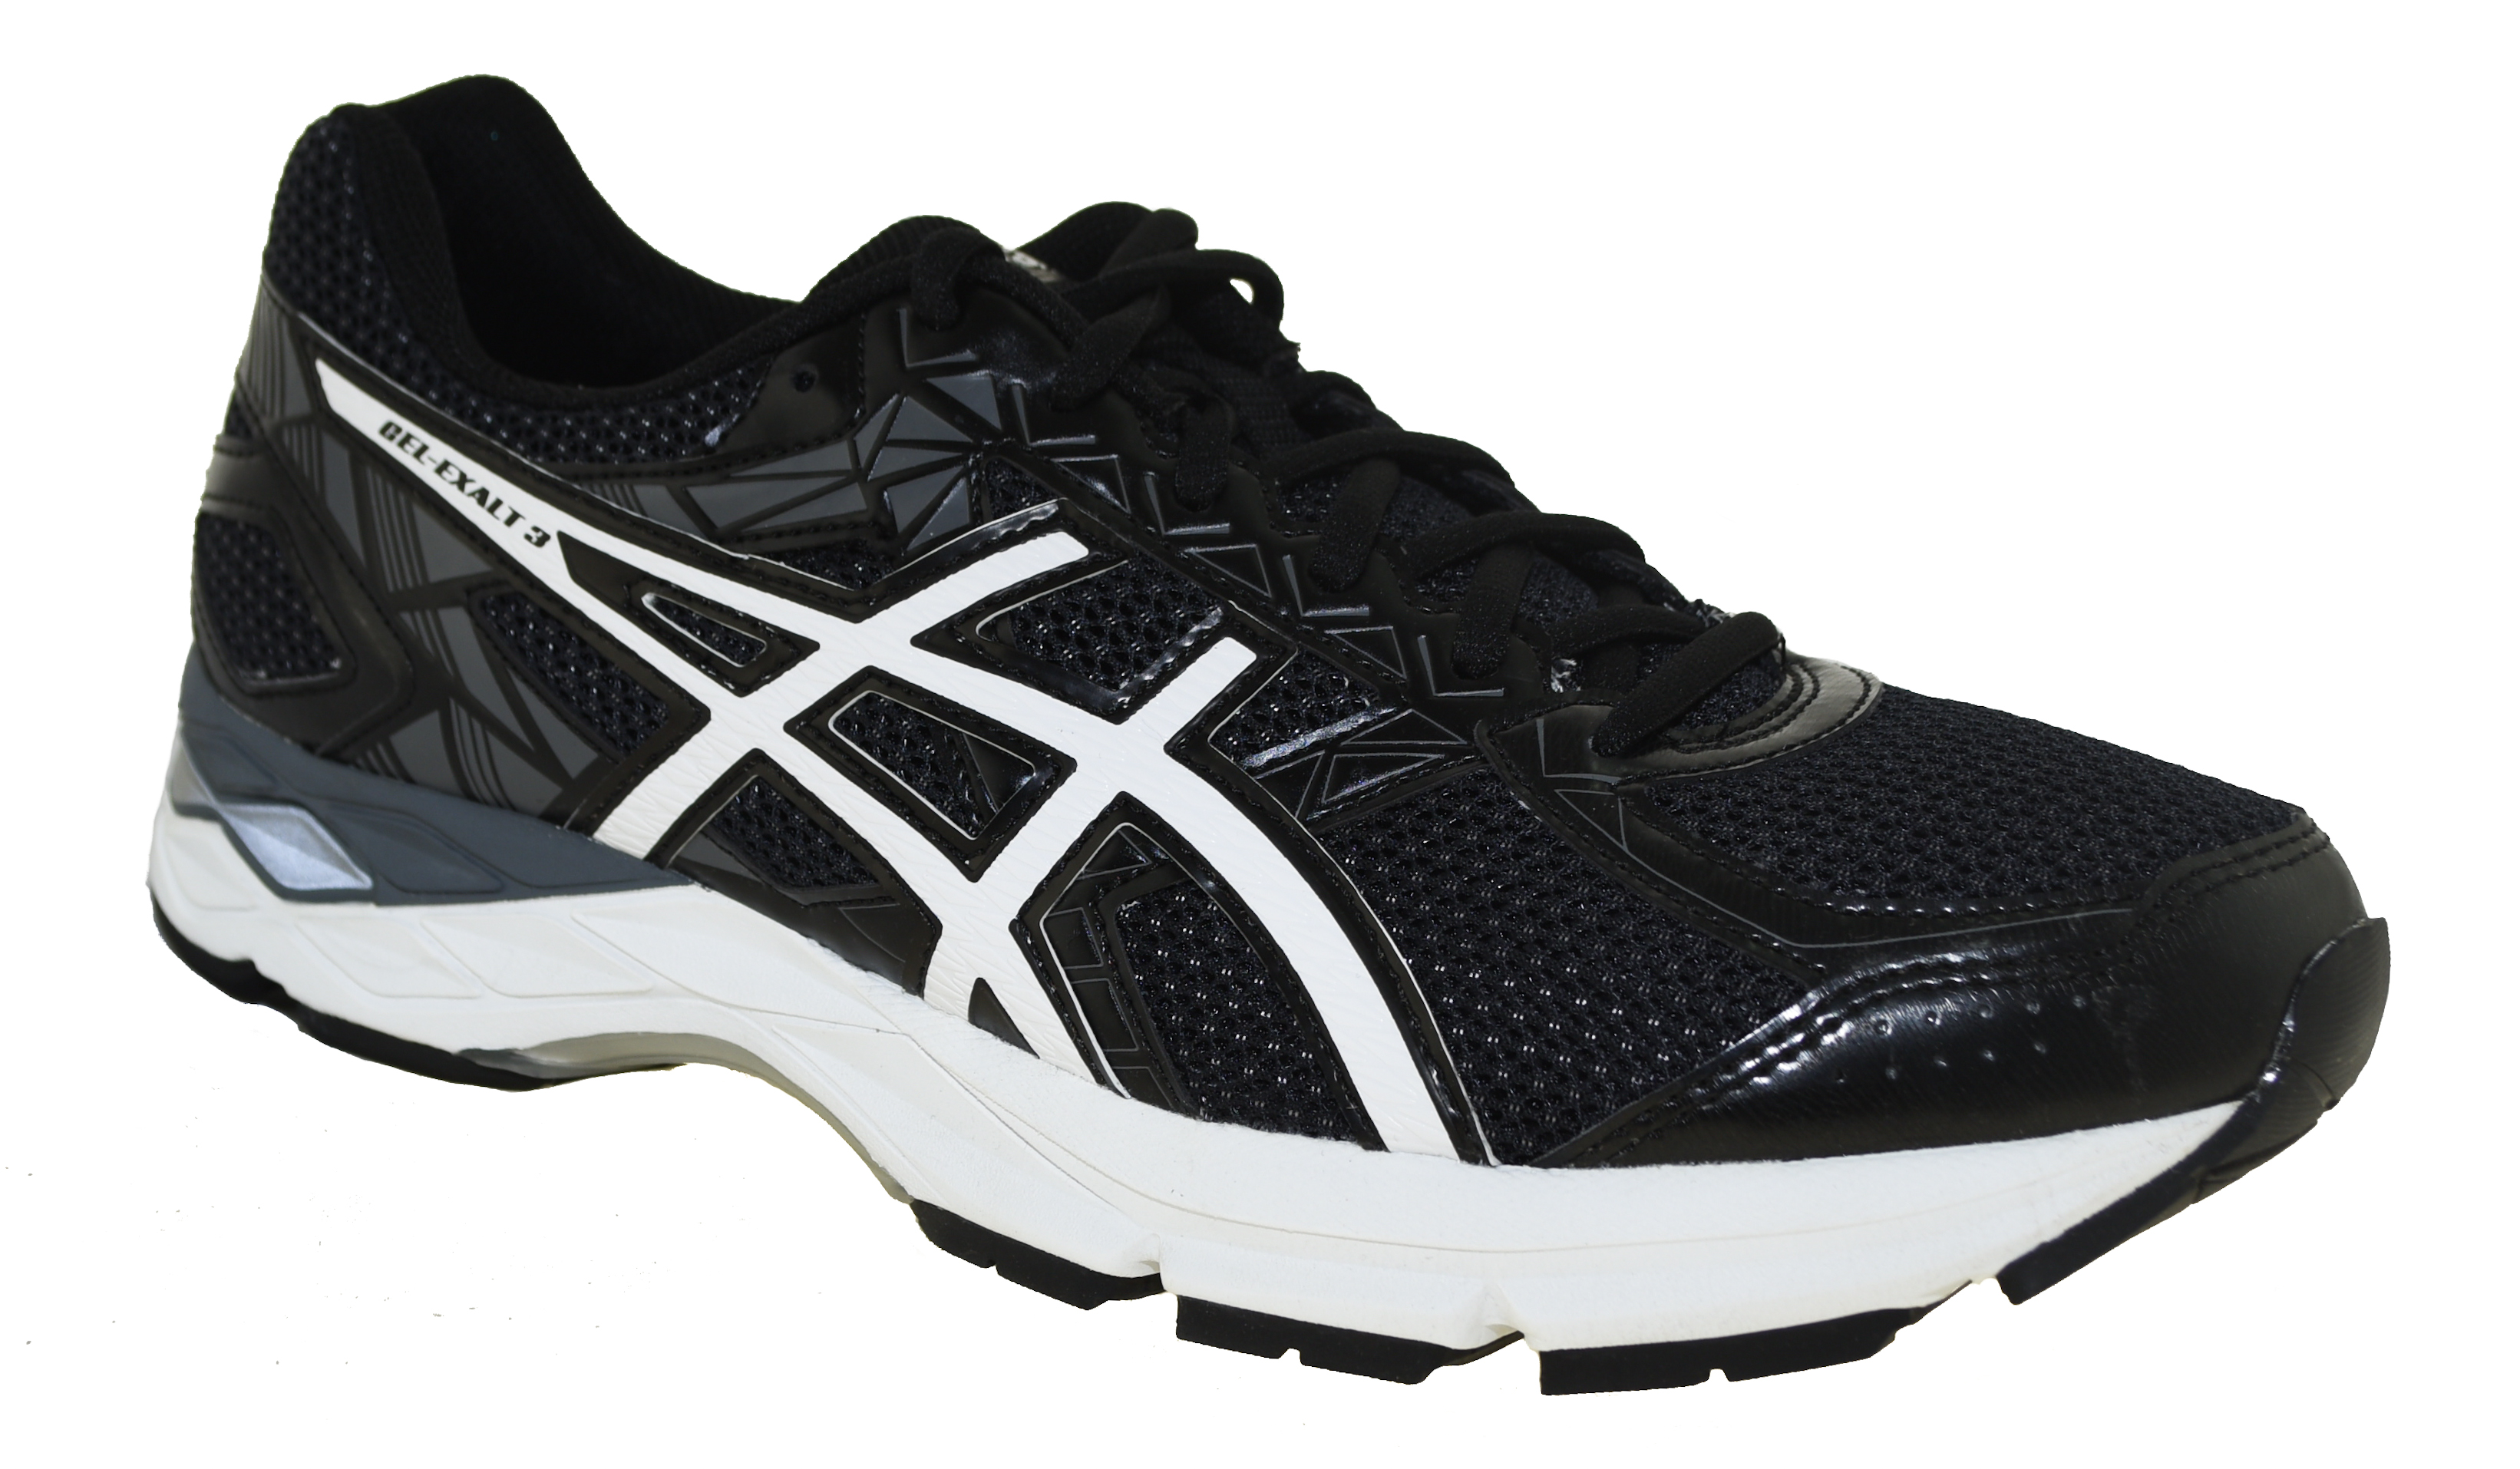 Asics Men s Gel-Exalt 3 Running Shoes Black White Carbon  64379bb242ffa